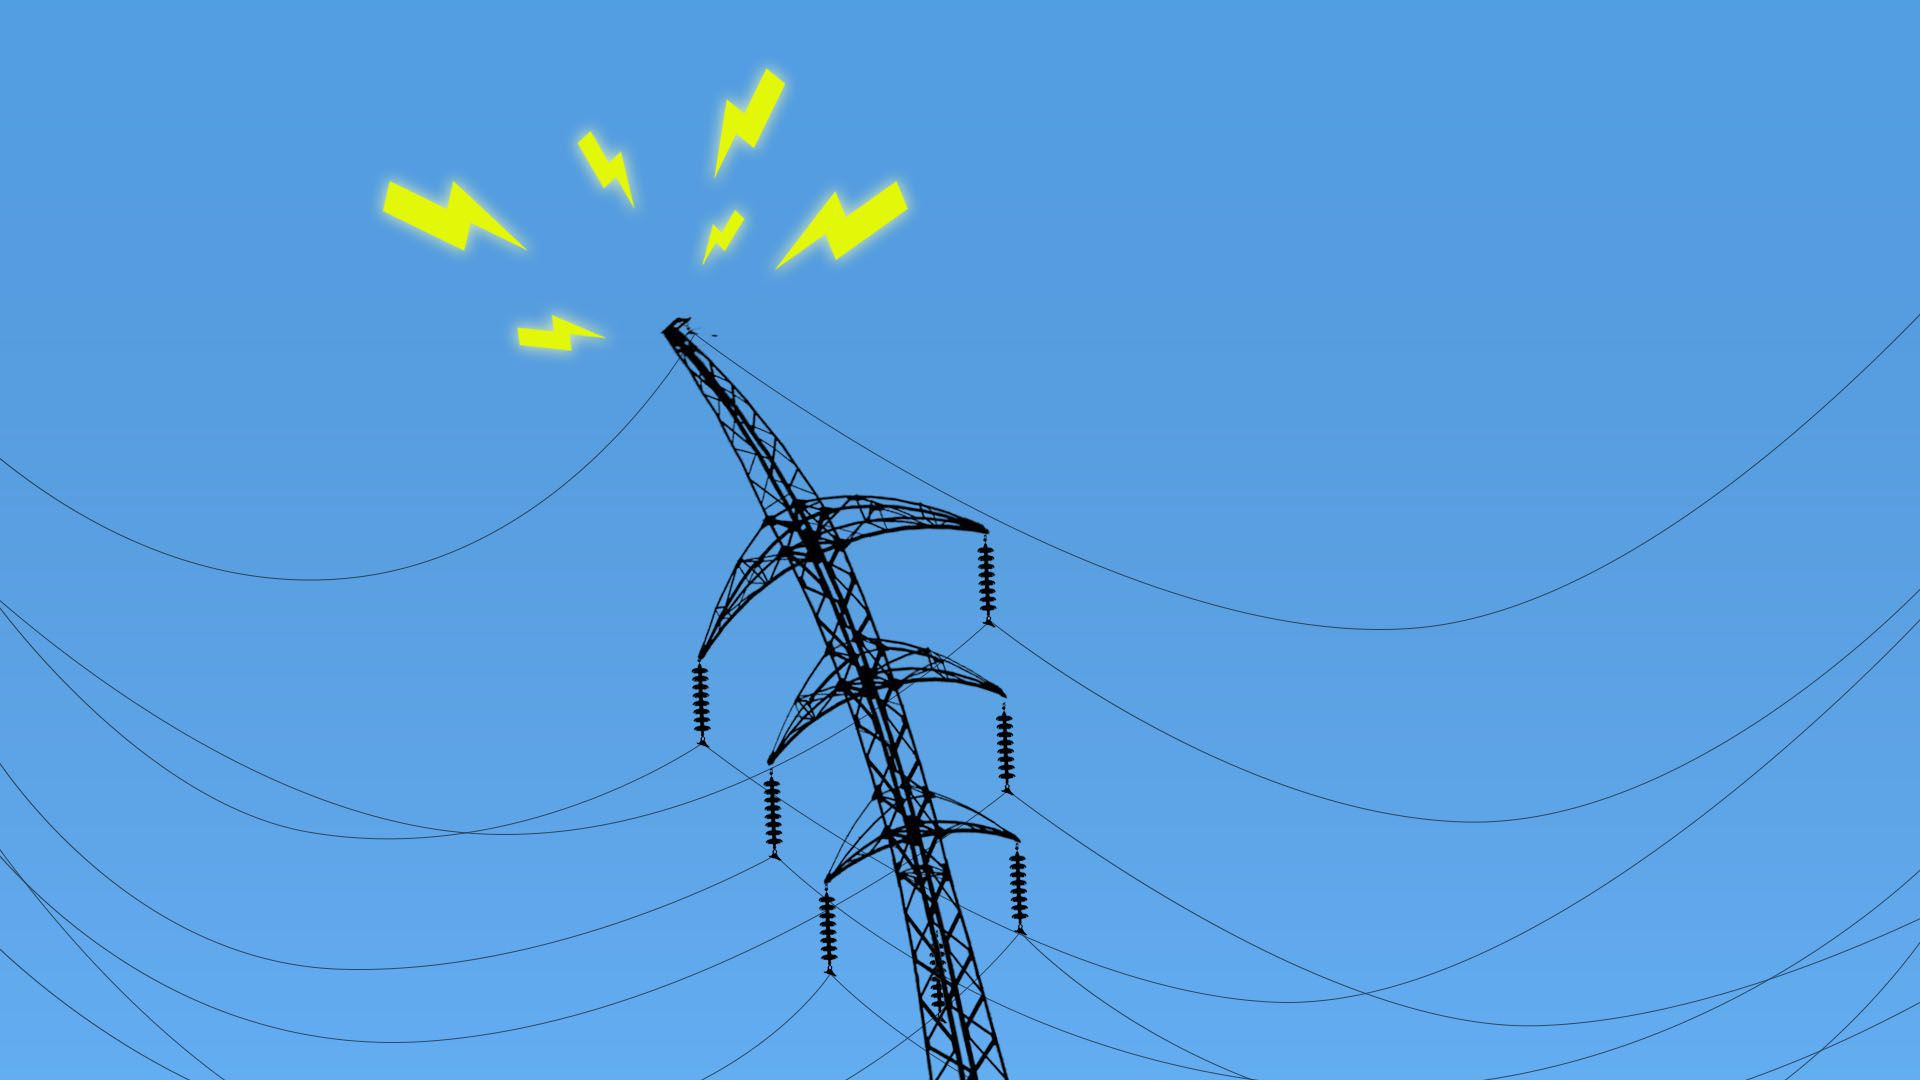 Illustration of a power line struggling under the weight of electrical wires